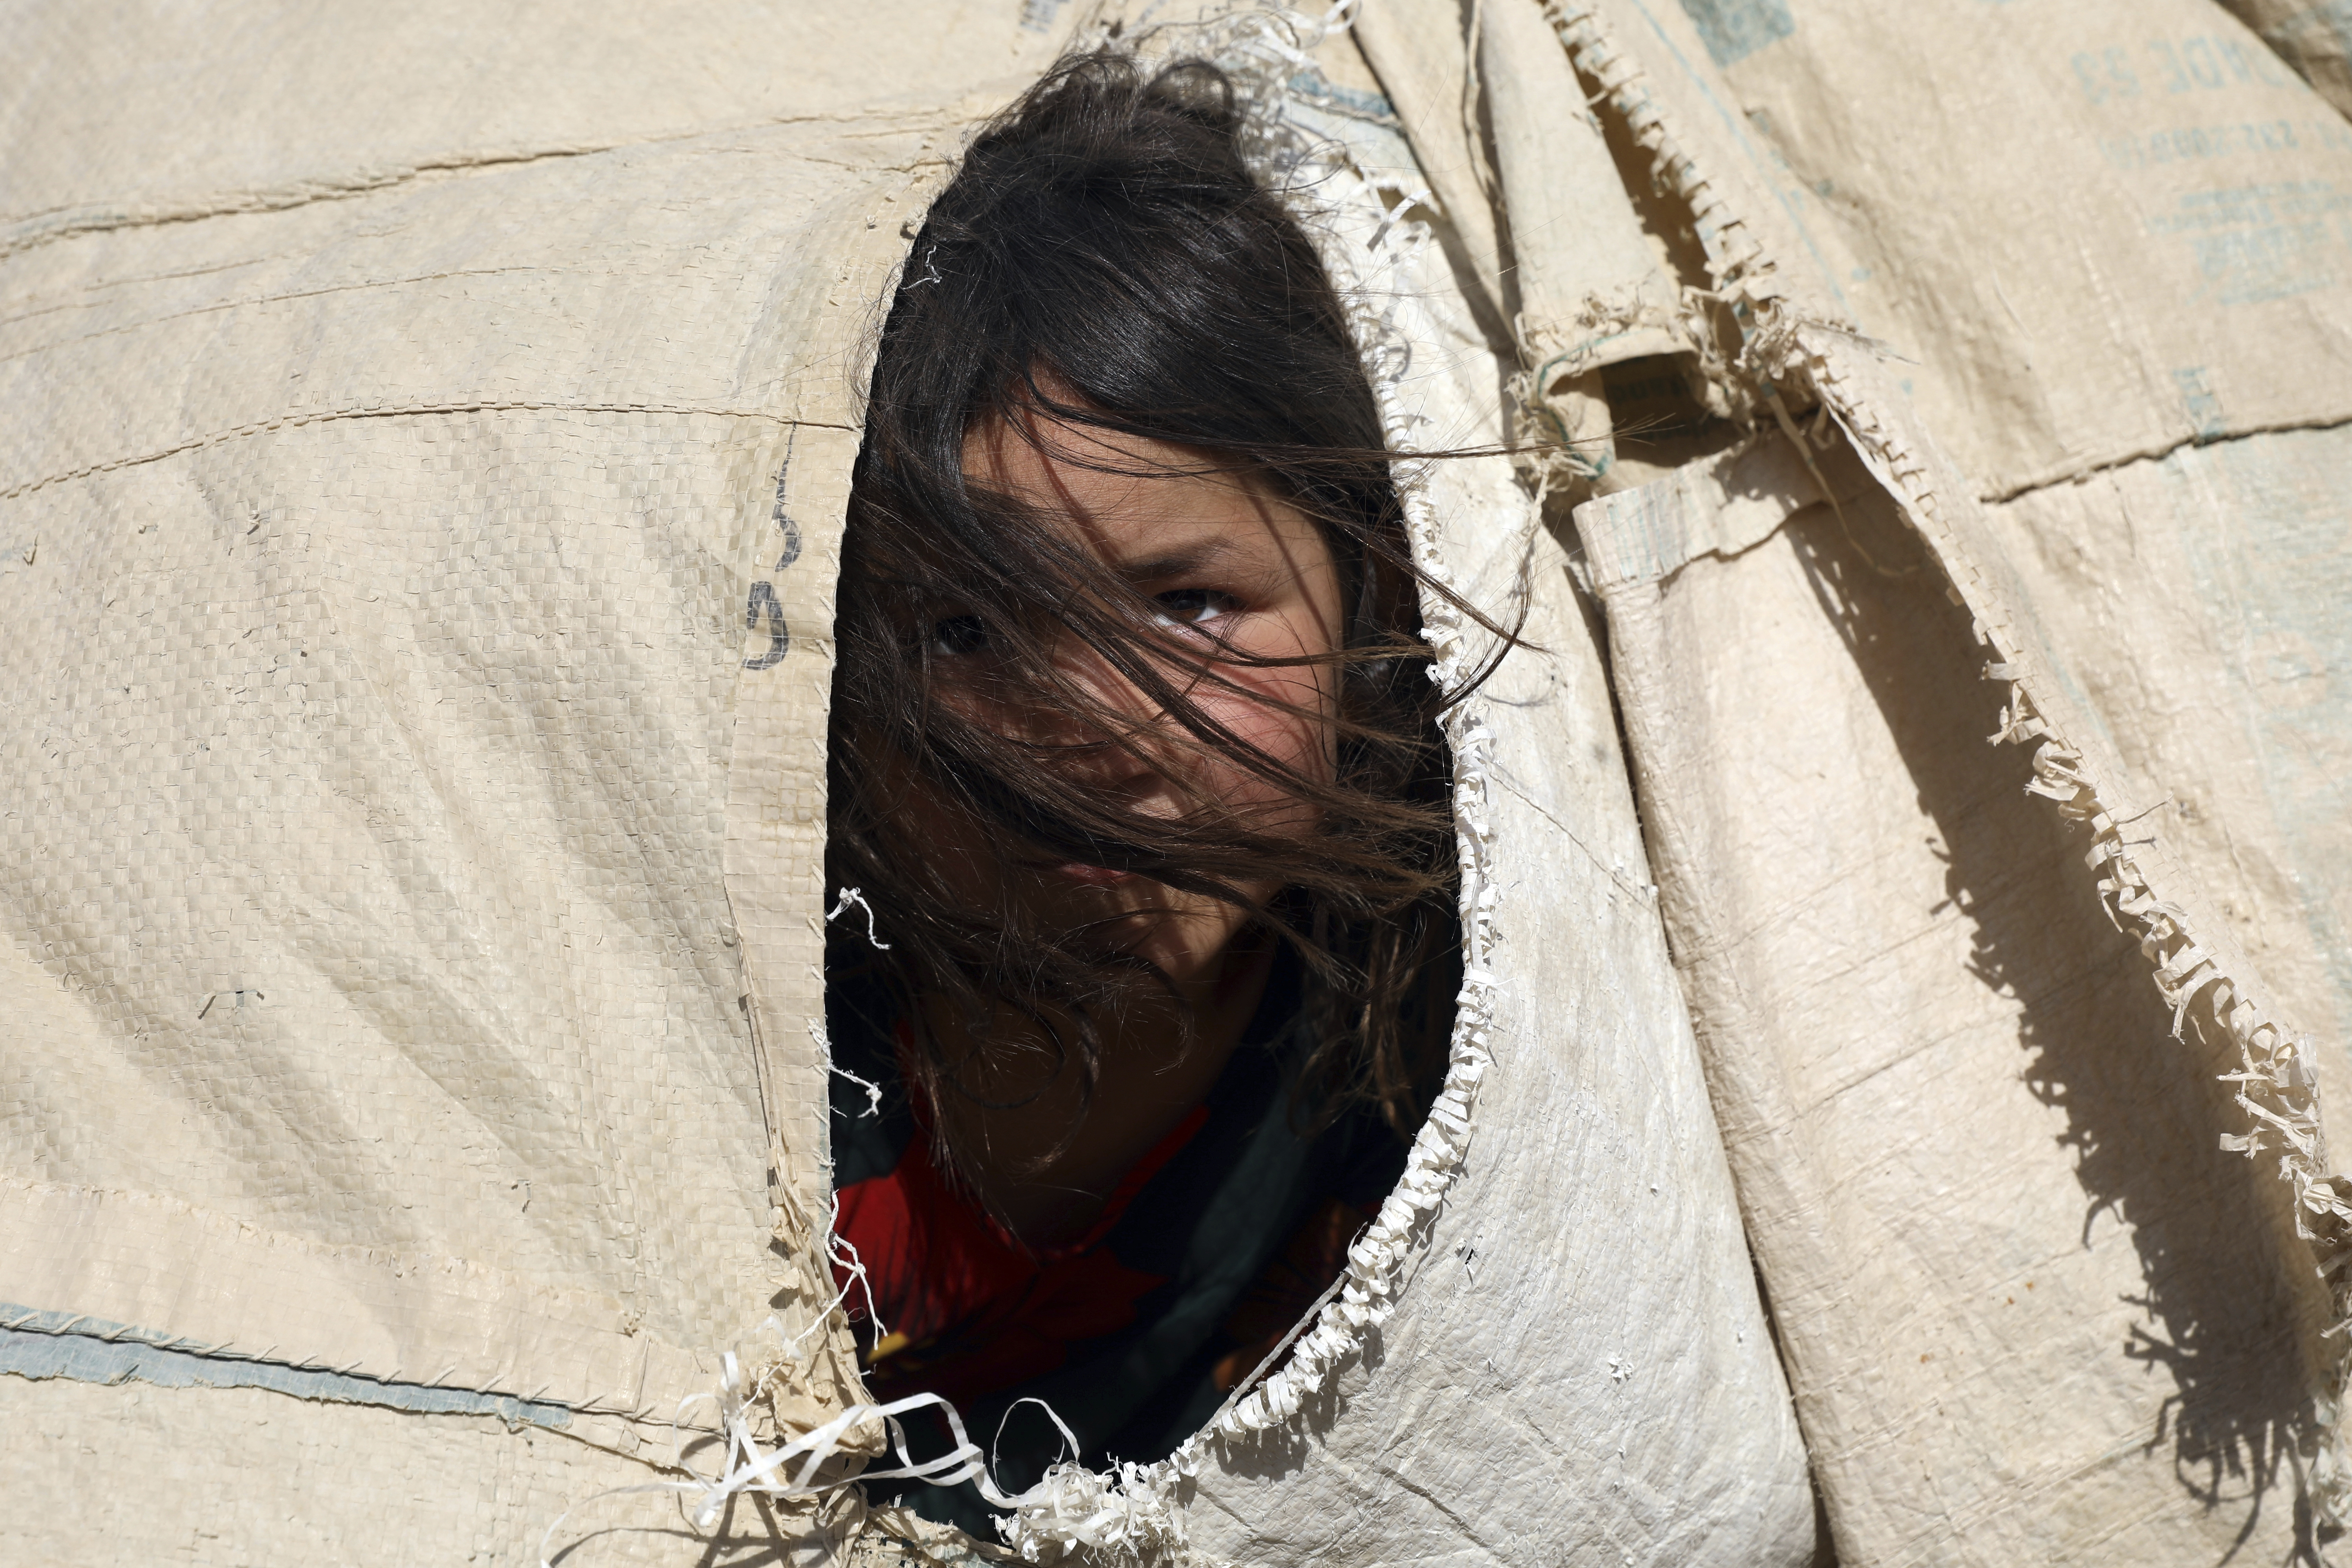 An internally displaced girl in a camp on the outskirts of Mazar-e-Sharif, Afghanistan